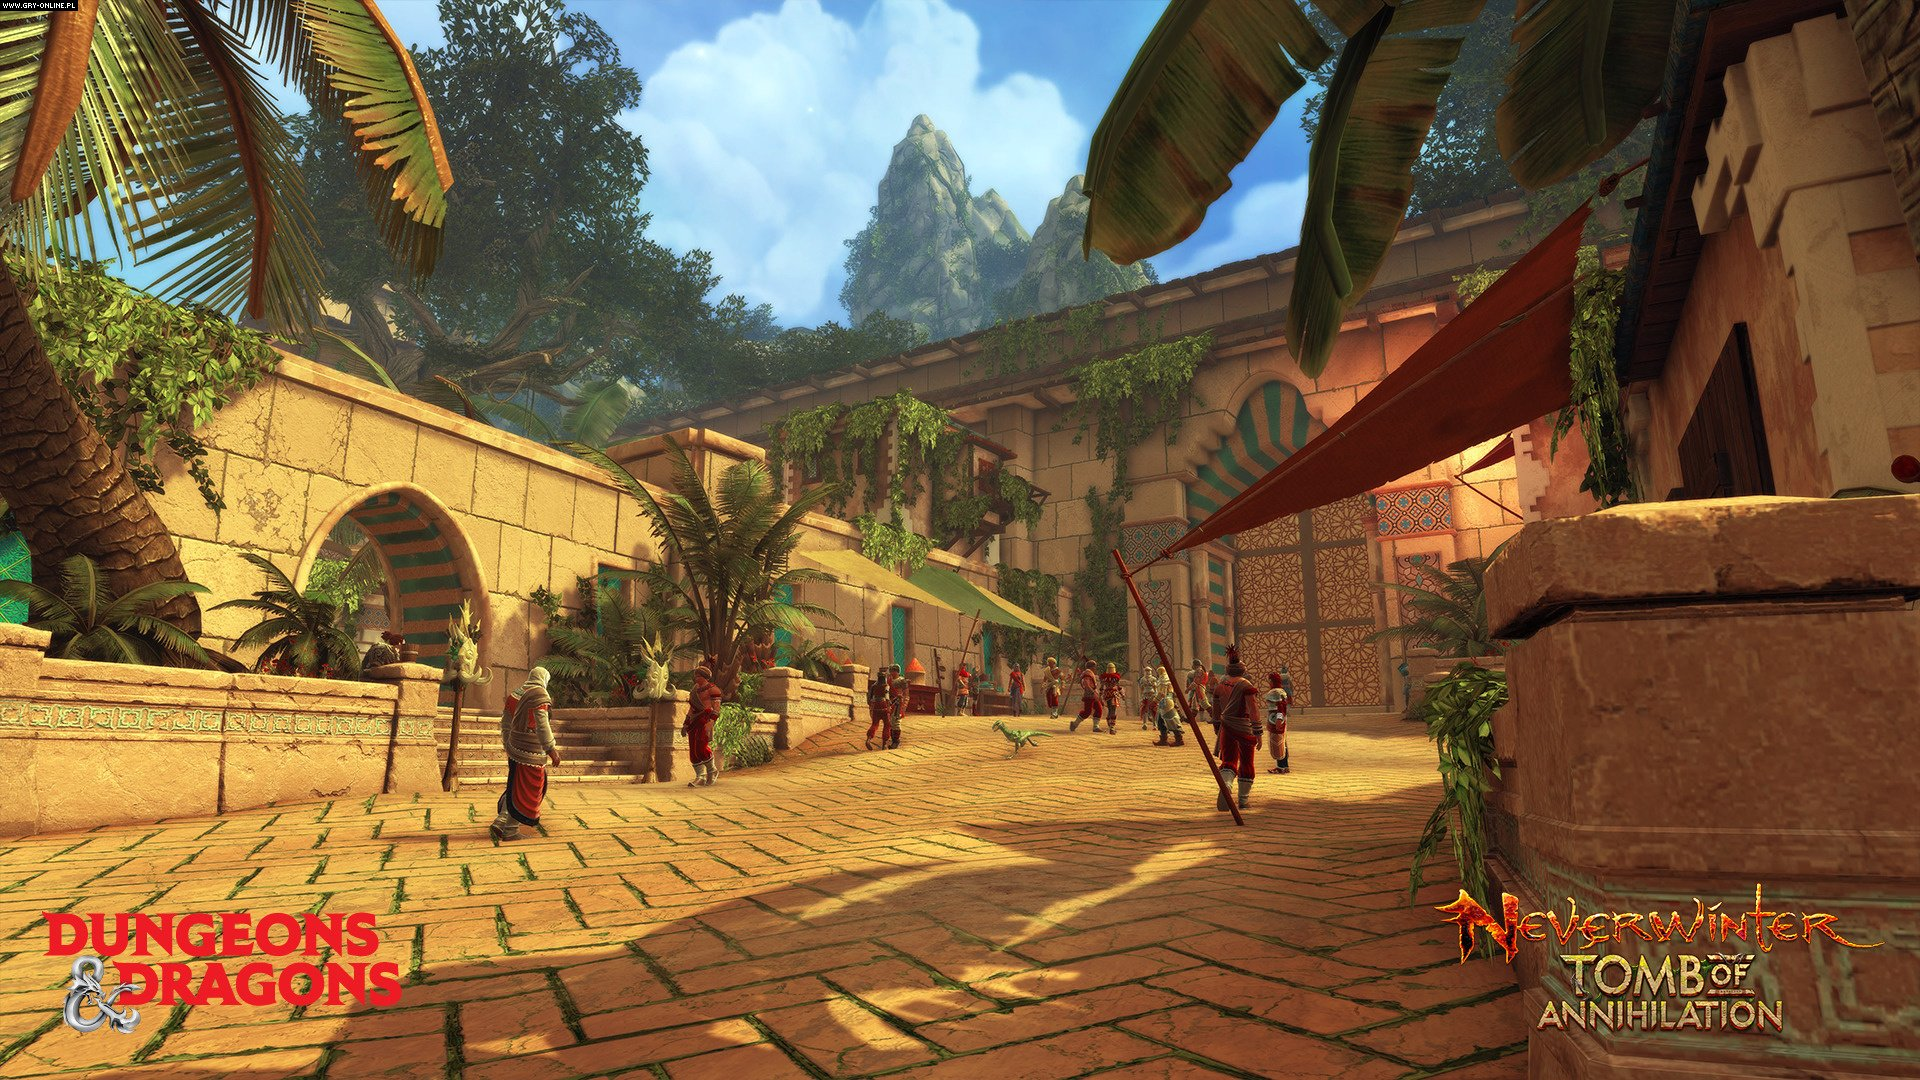 Neverwinter PC, PS4, XONE Games Image 3/336, Cryptic Studios, Perfect World Entertainment